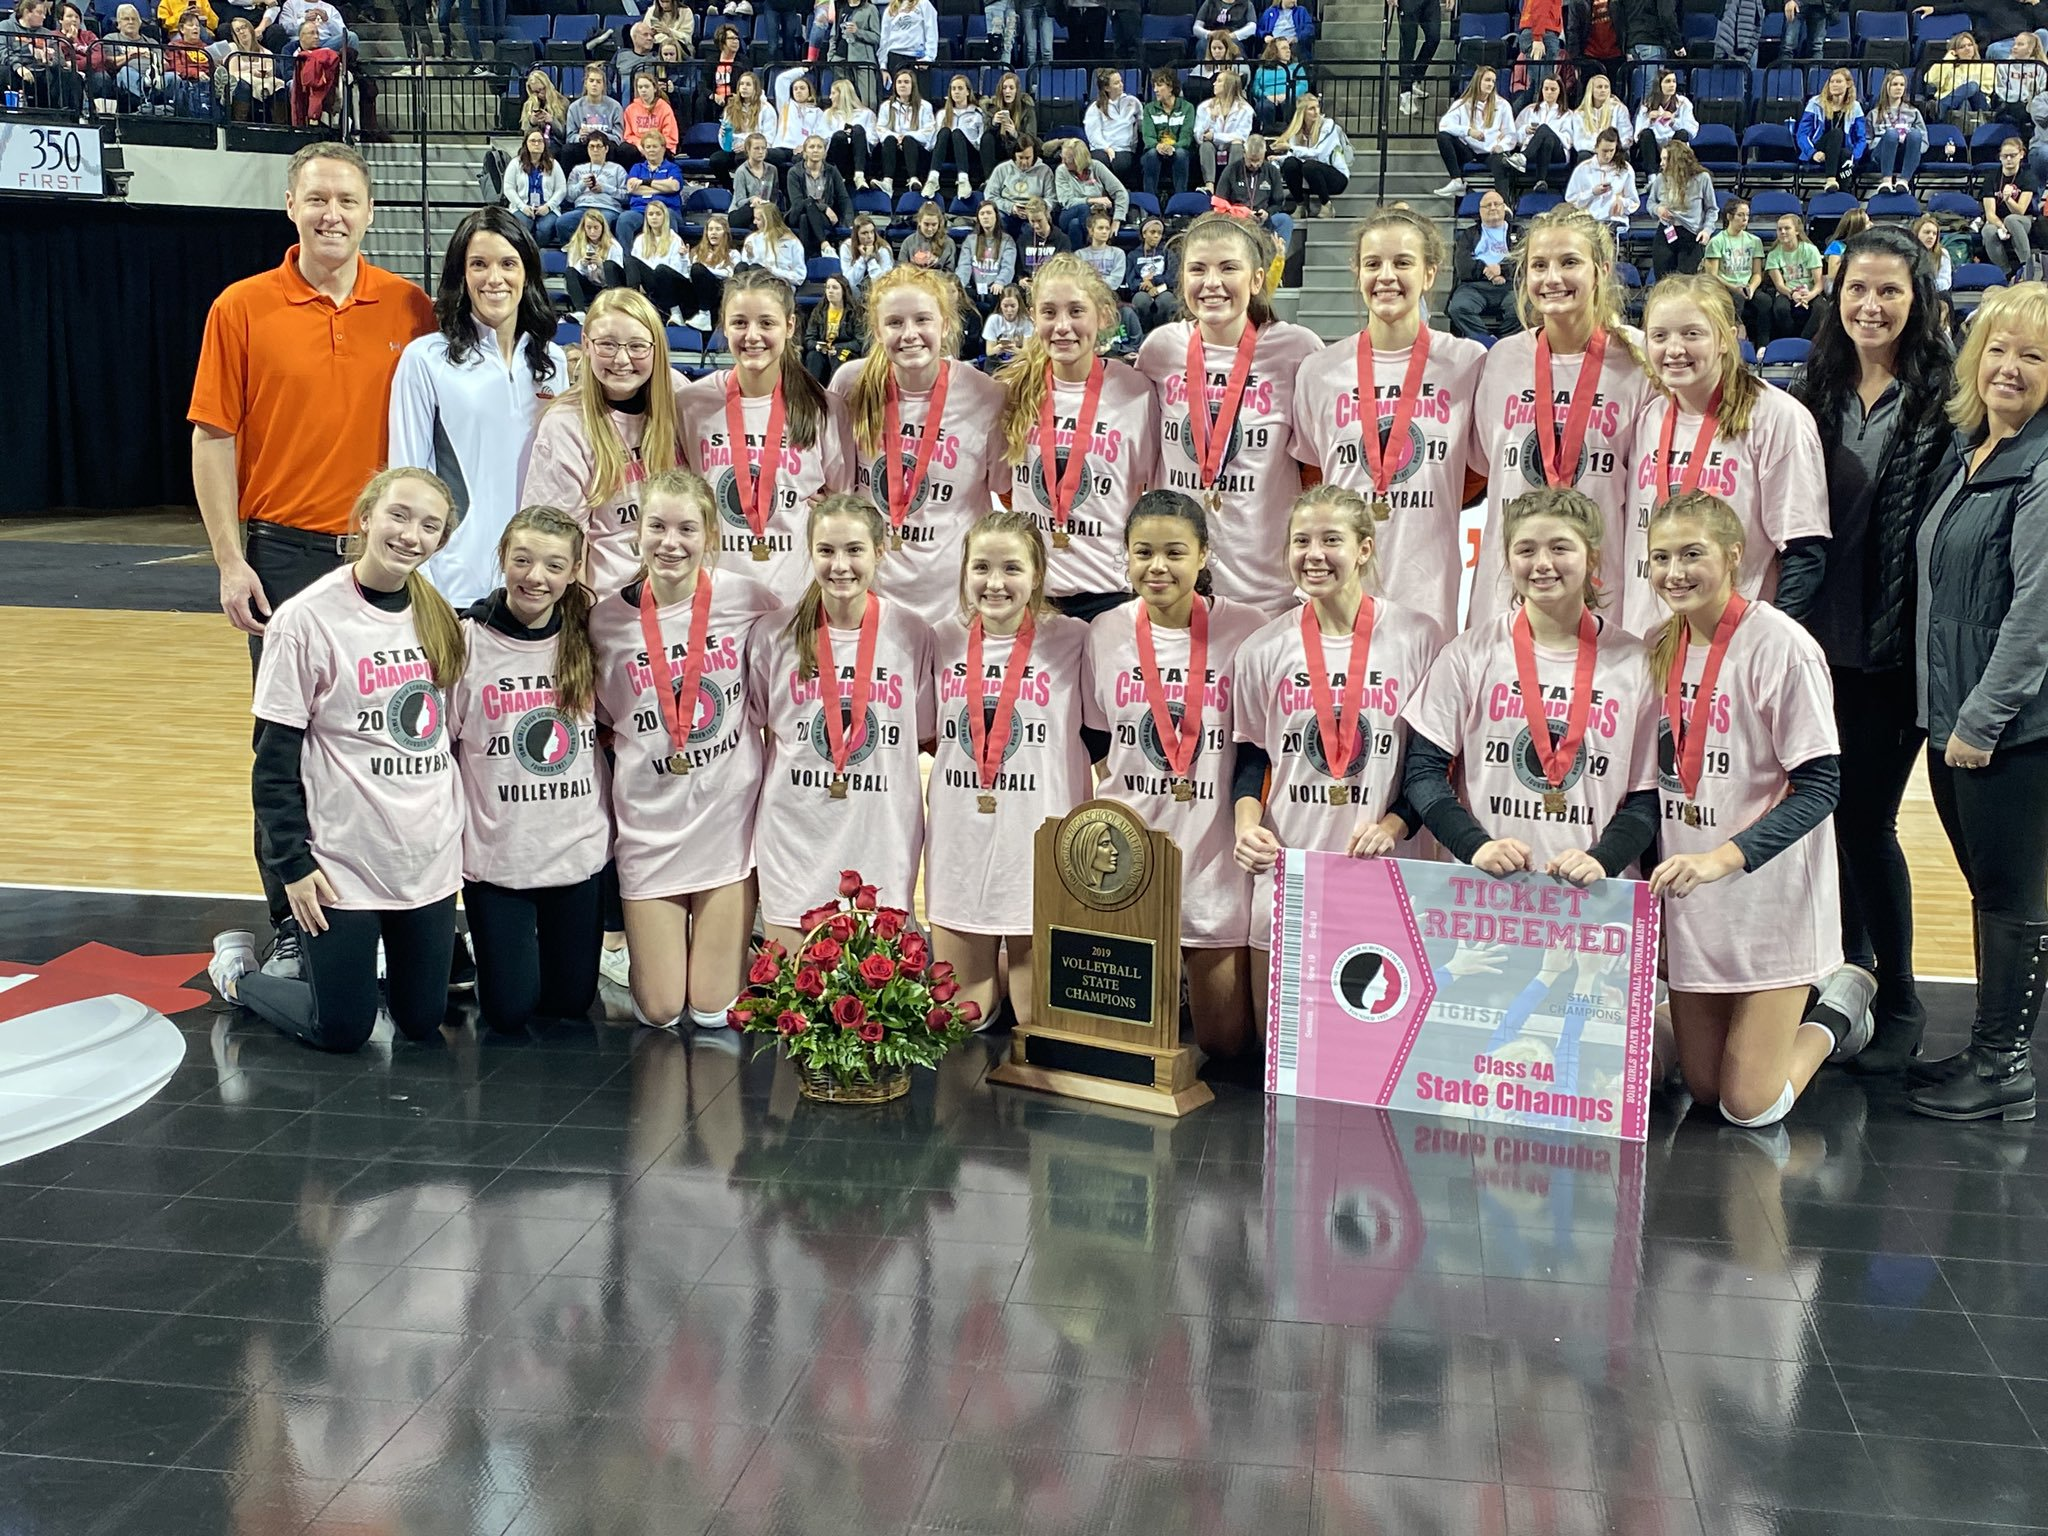 Sgt. Bluff-Luton captures state volleyball title